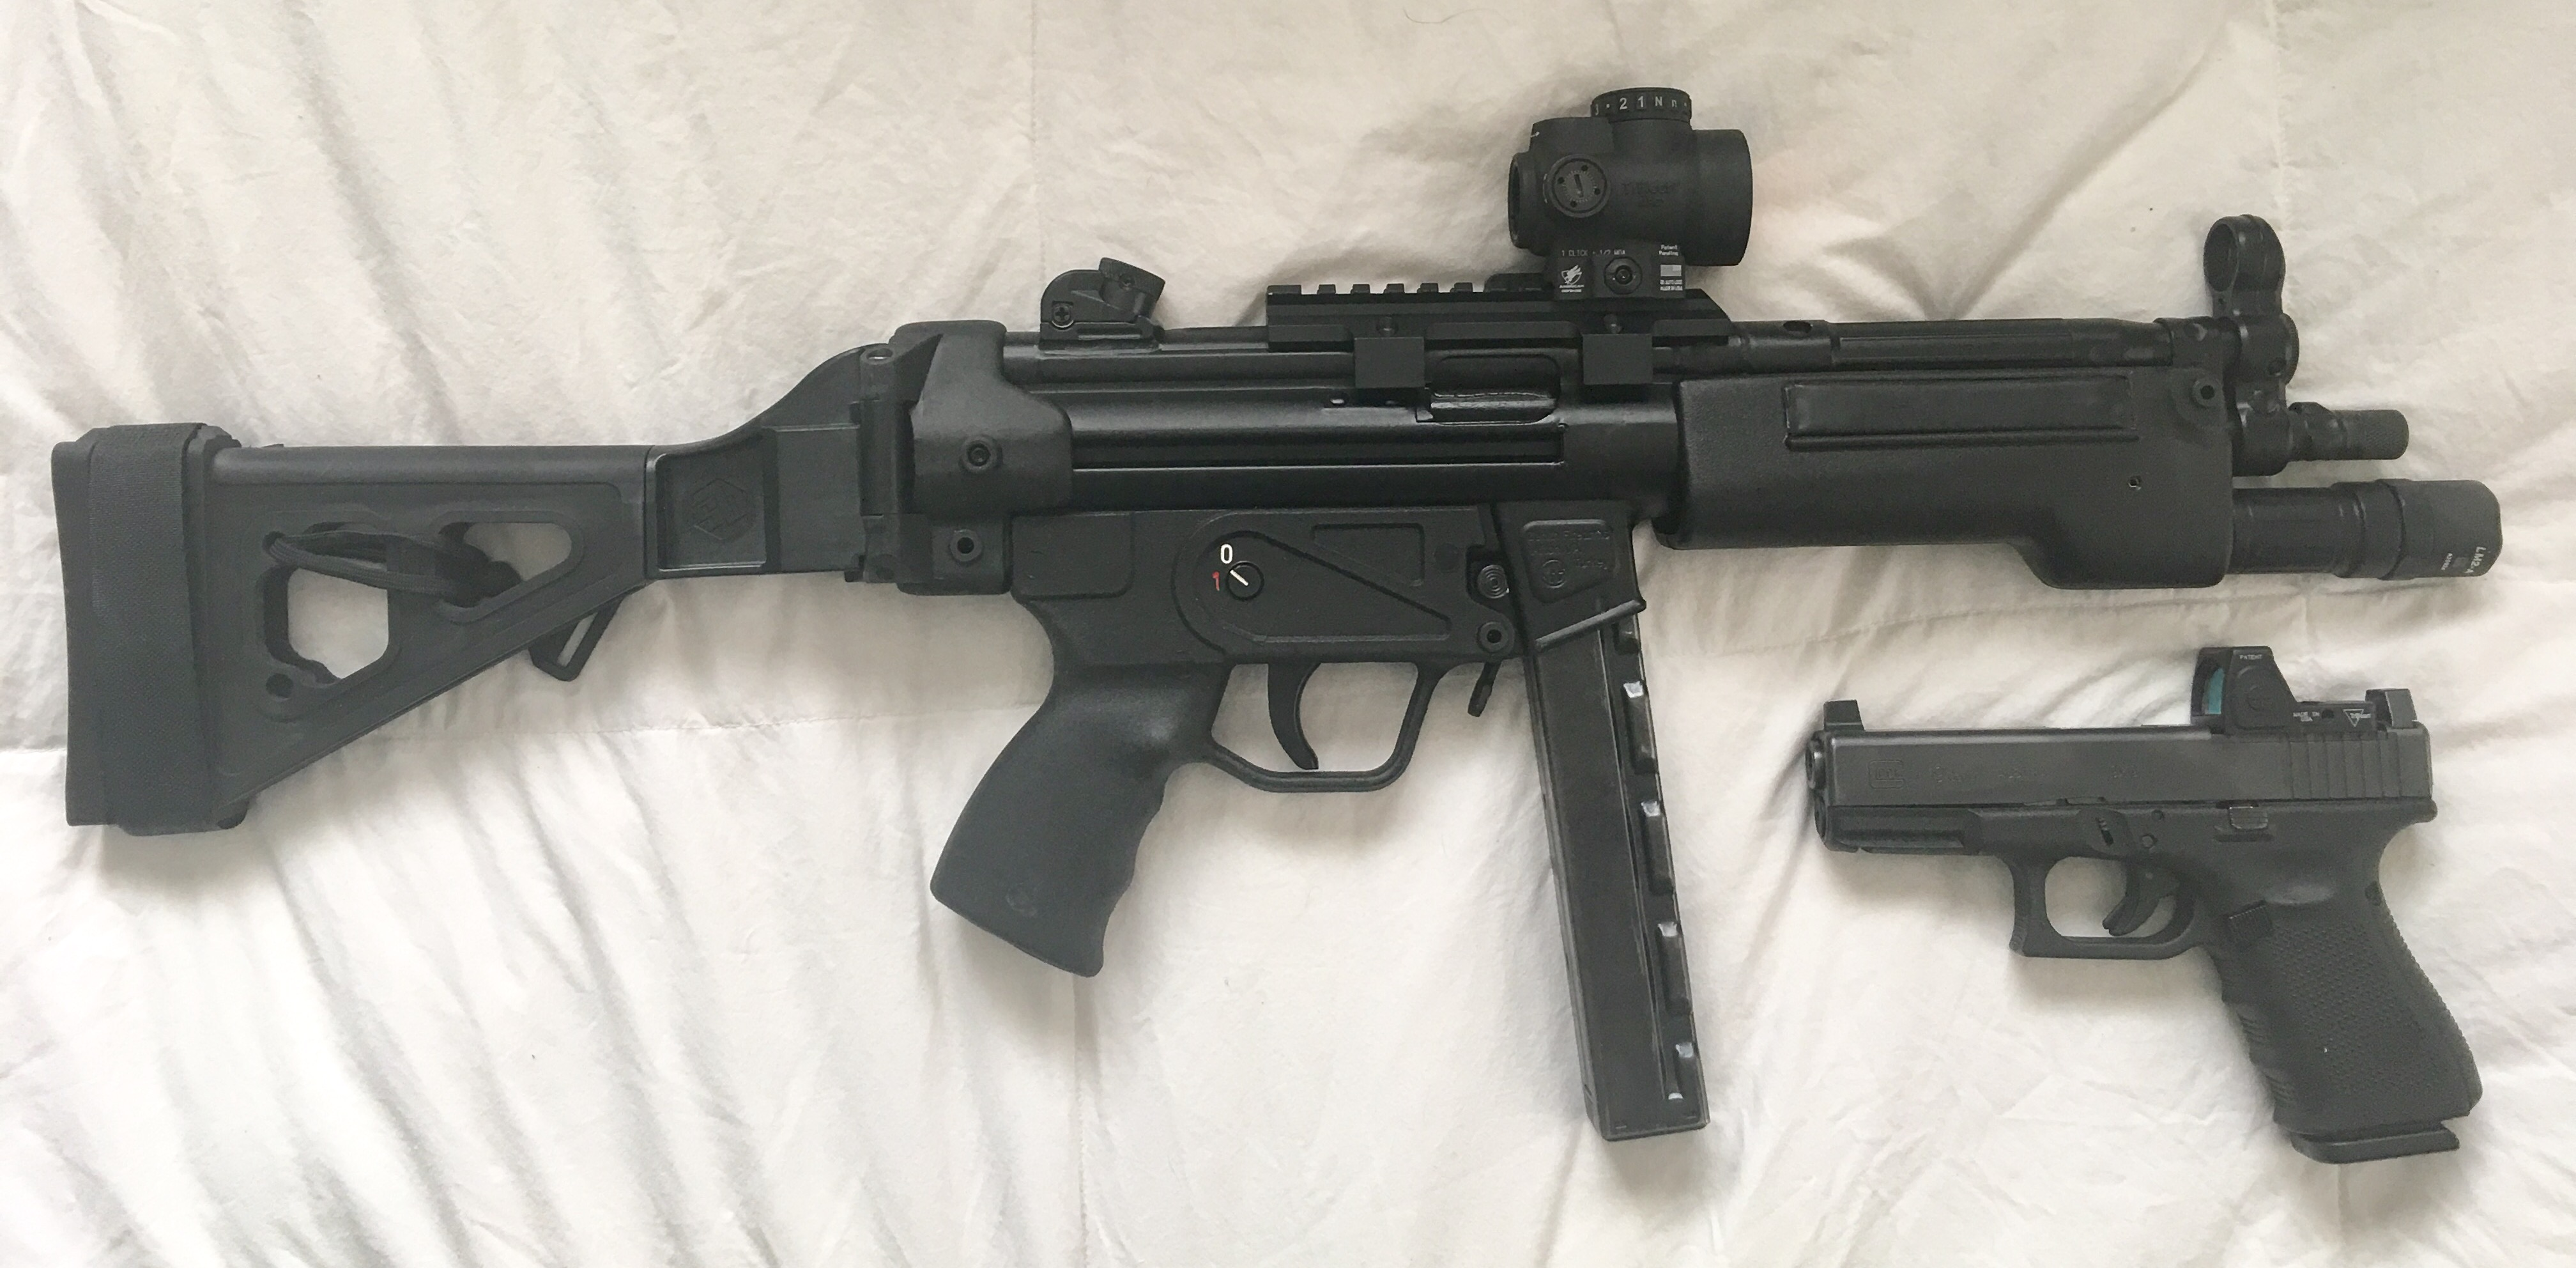 First MP5 Variant, First Impressions-fullsizerender.jpg